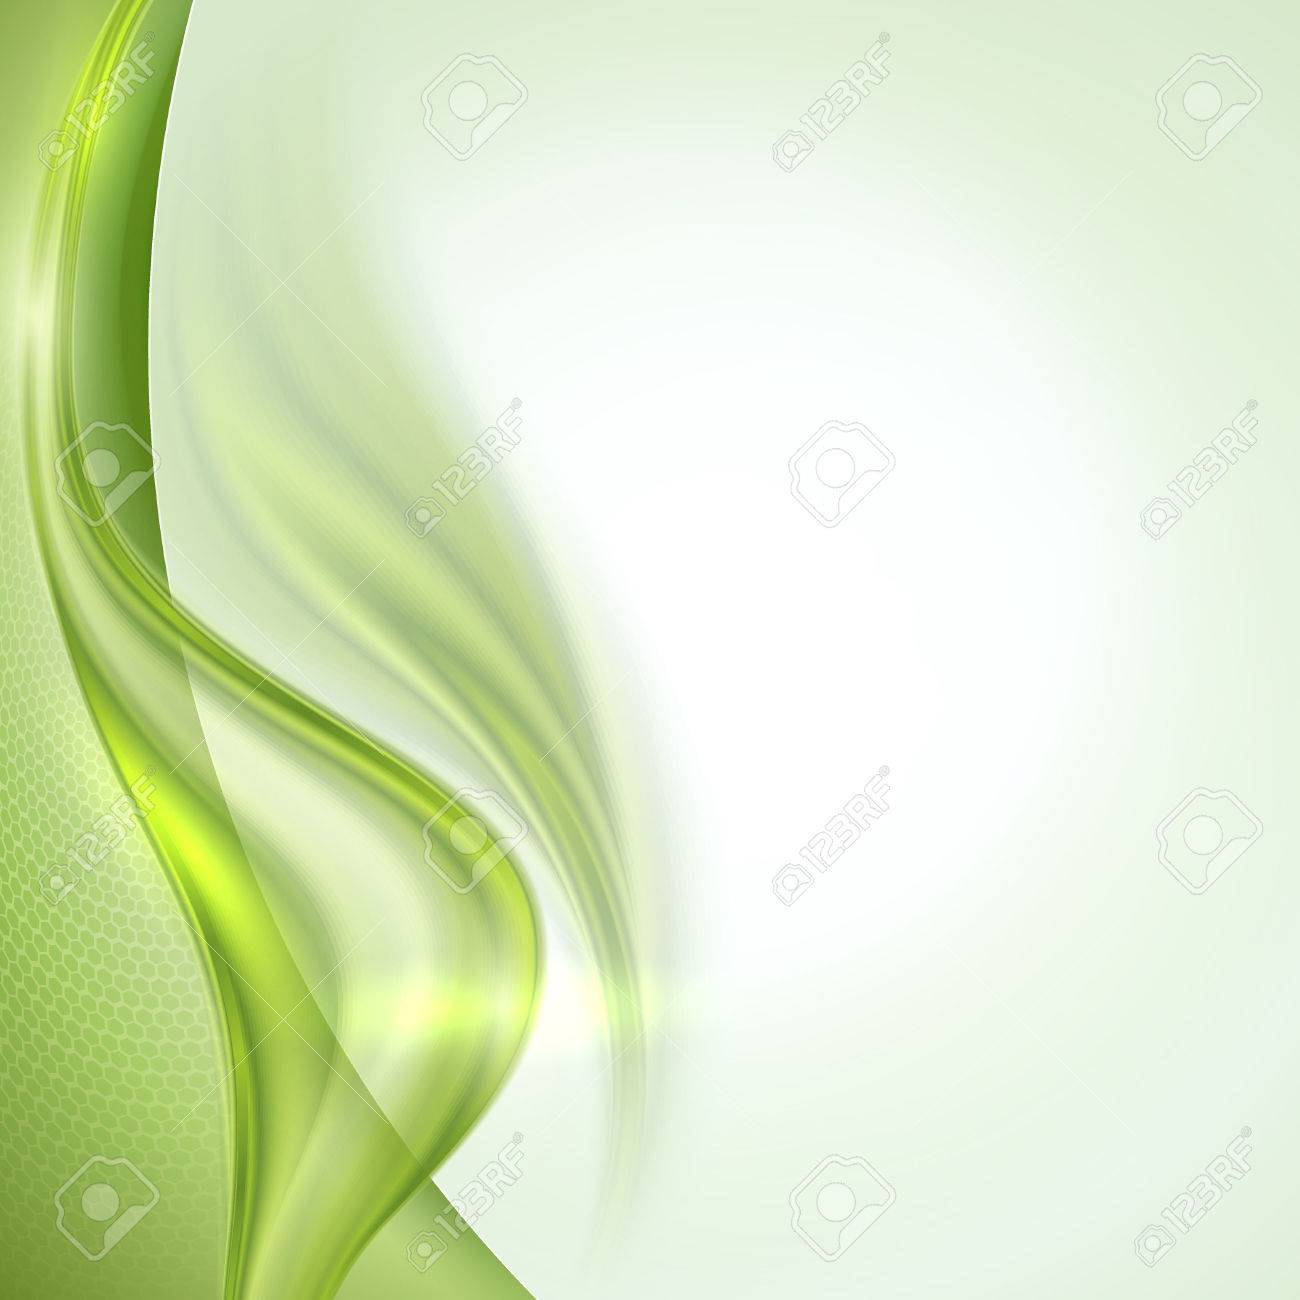 Abstract green waving background - 27331213